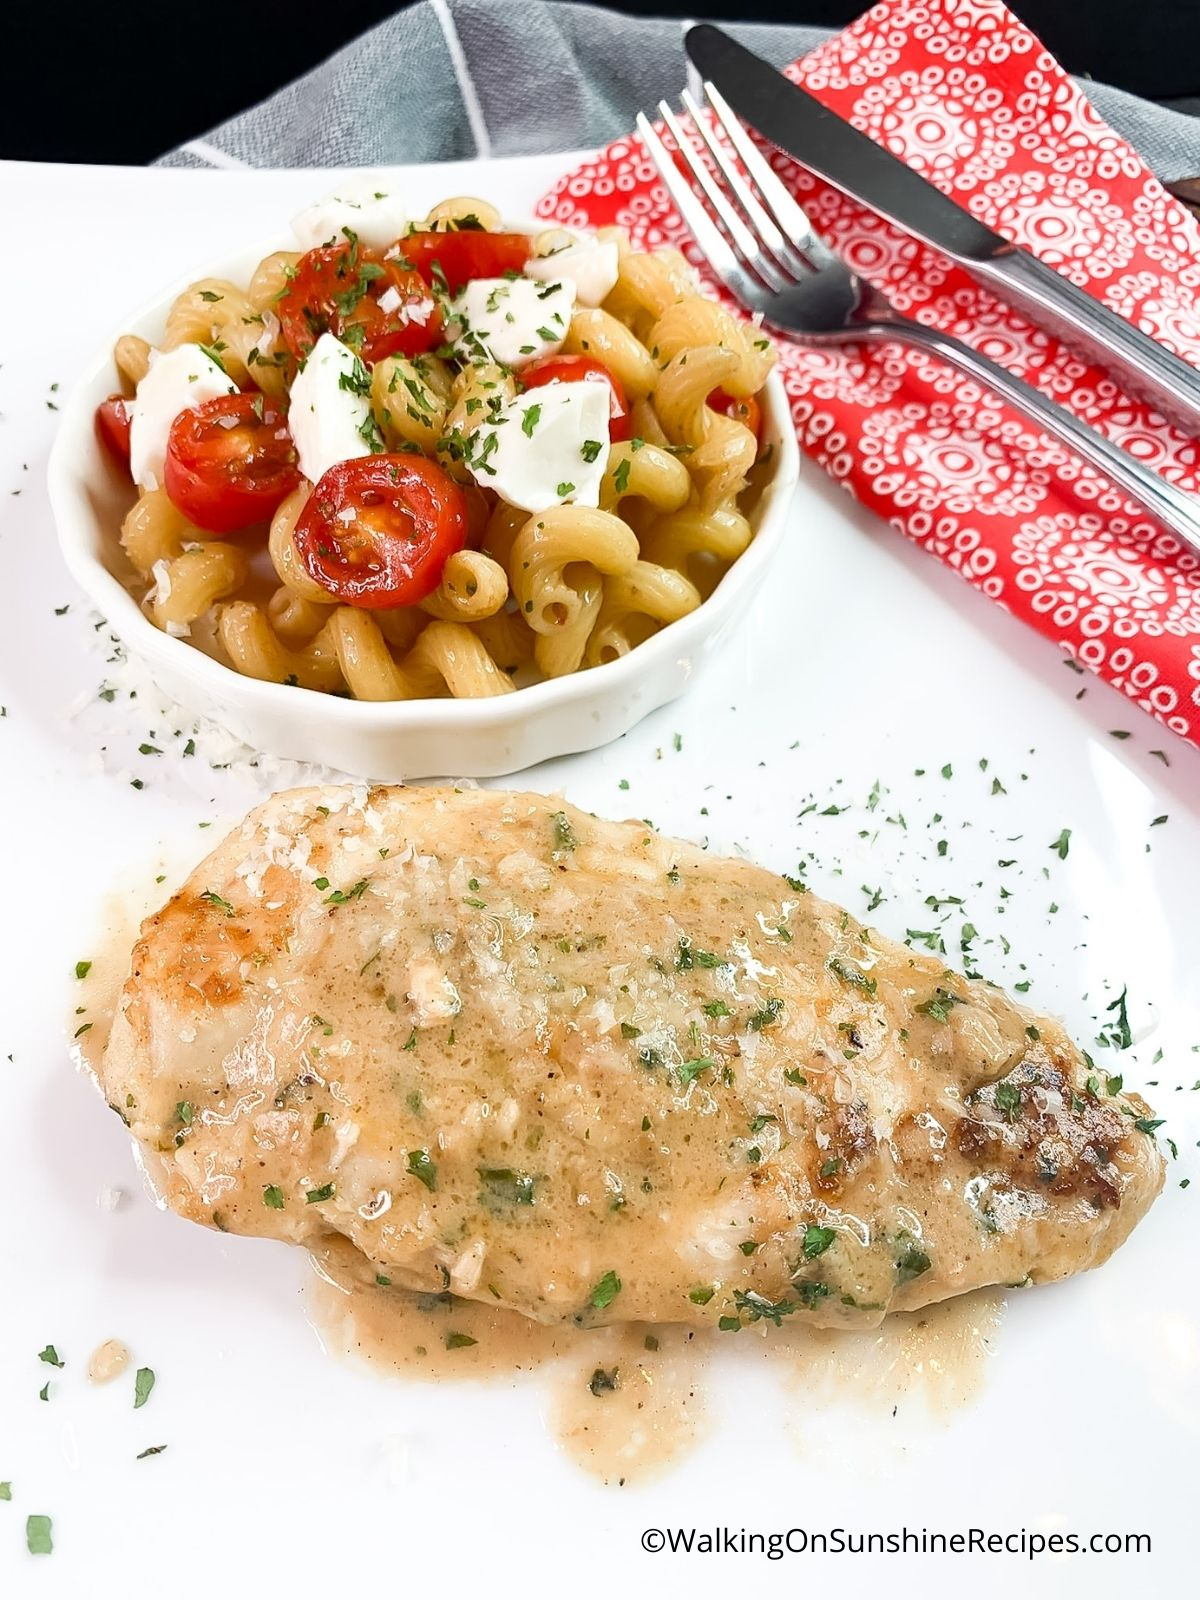 Sauteed chicken cutlets on white plate with pasta and tomatoes in bowl.